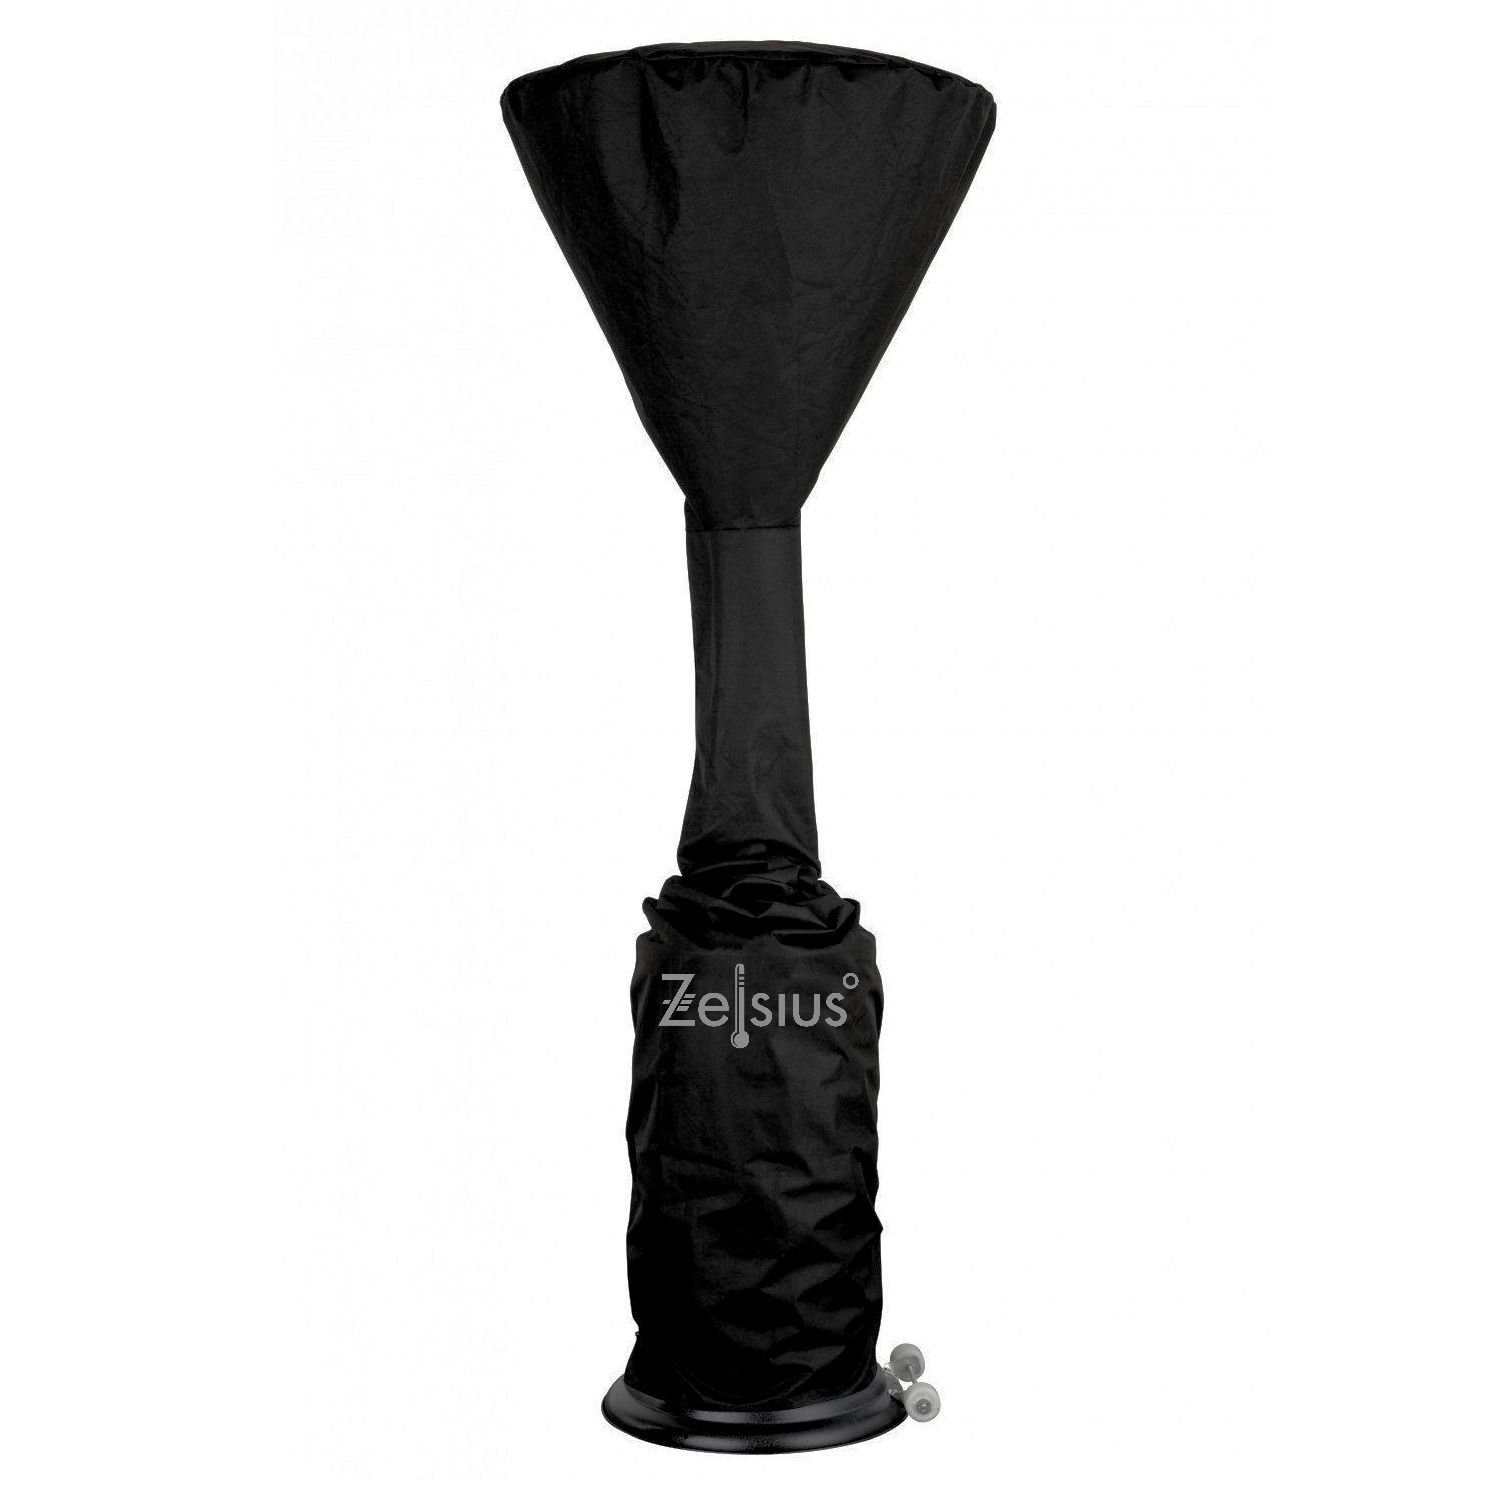 Zelsius Patio Heater Cover, Protective Cover for Patio Heater Heating Pyramid Approx. Diameter 70 x (H) 252 cm, and more